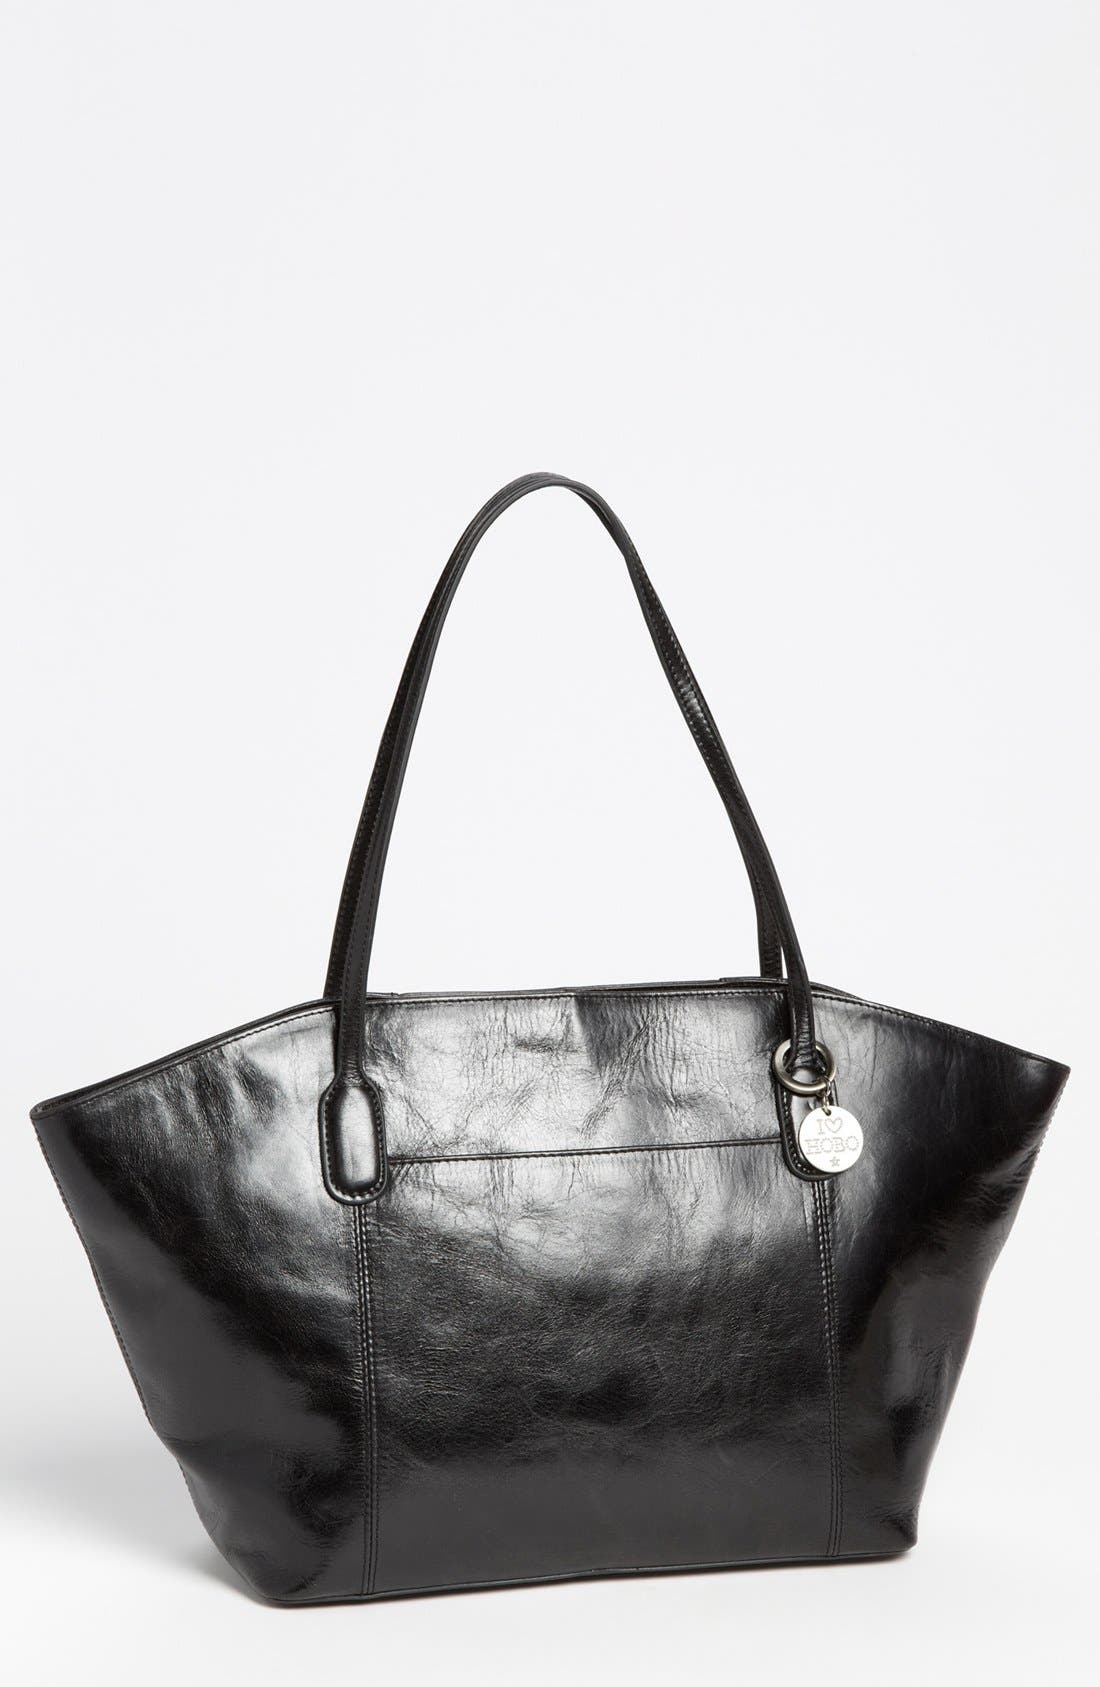 Alternate Image 1 Selected - Hobo 'Patti' Leather Tote